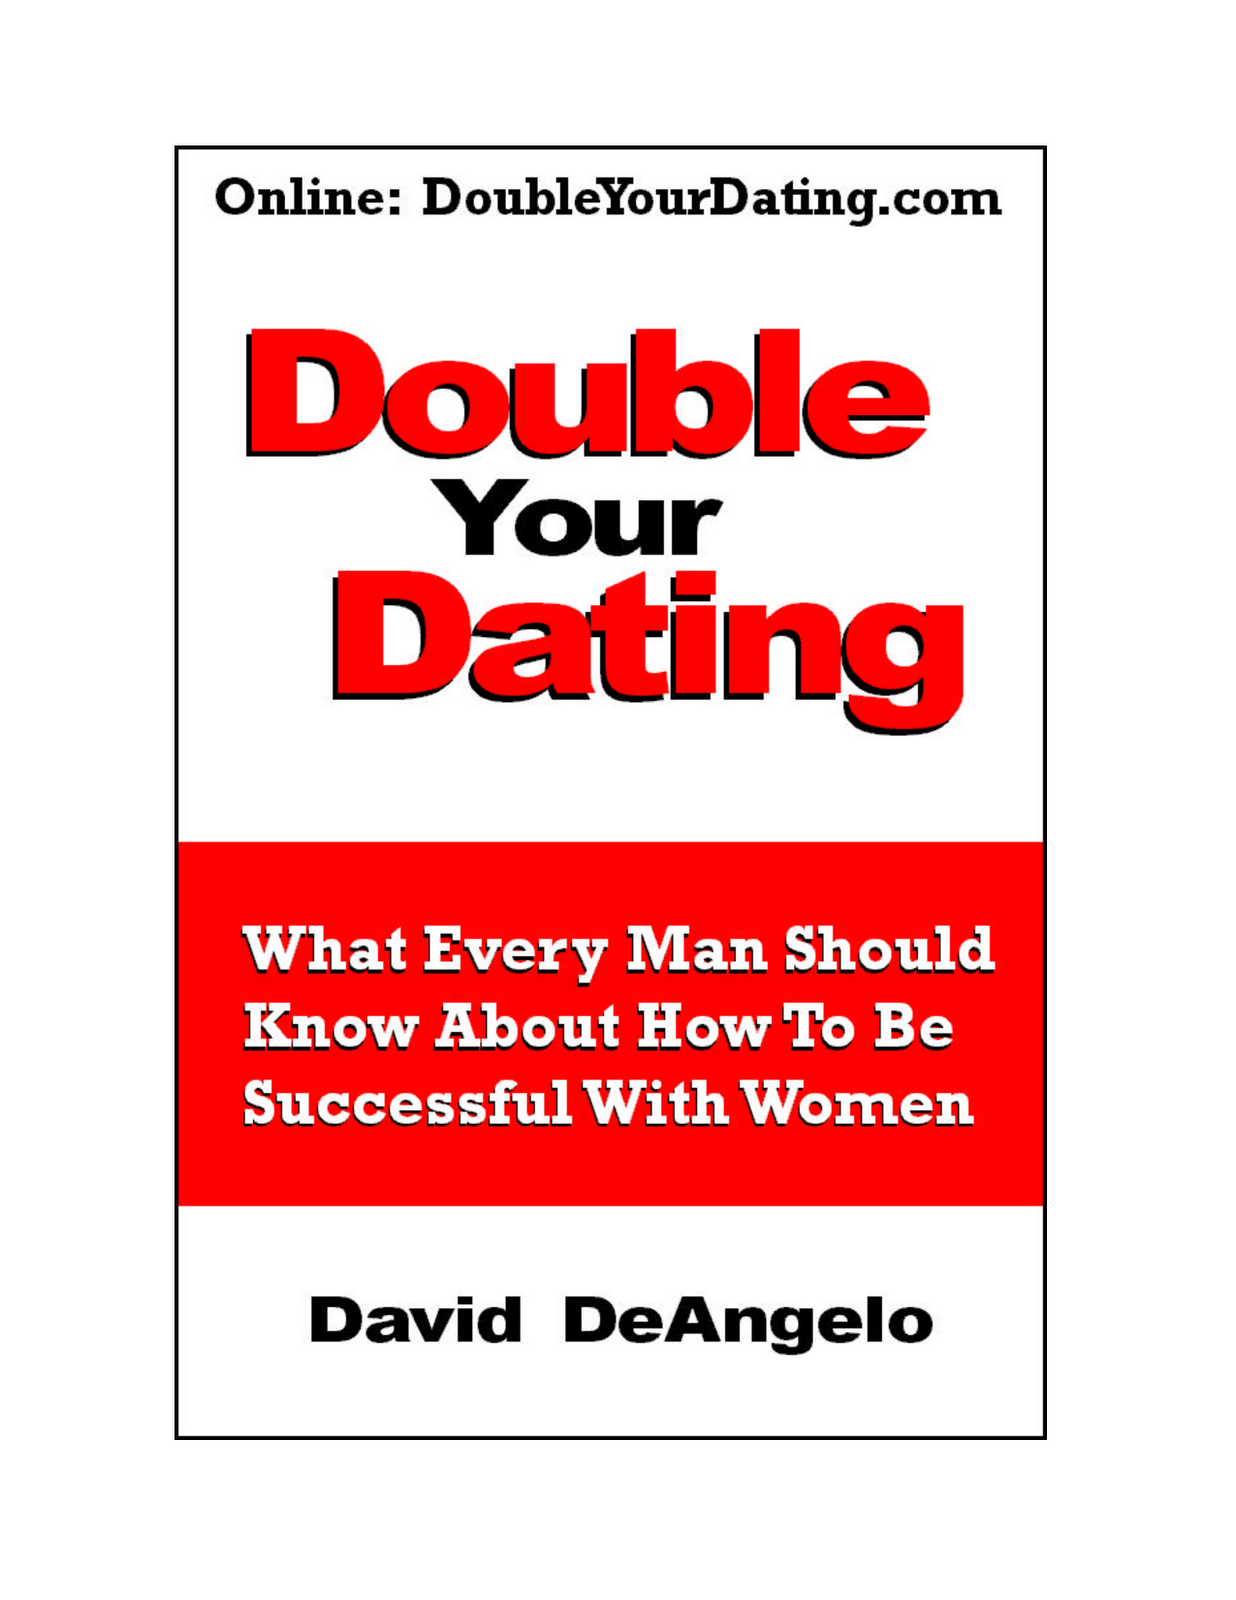 Double your dating download free